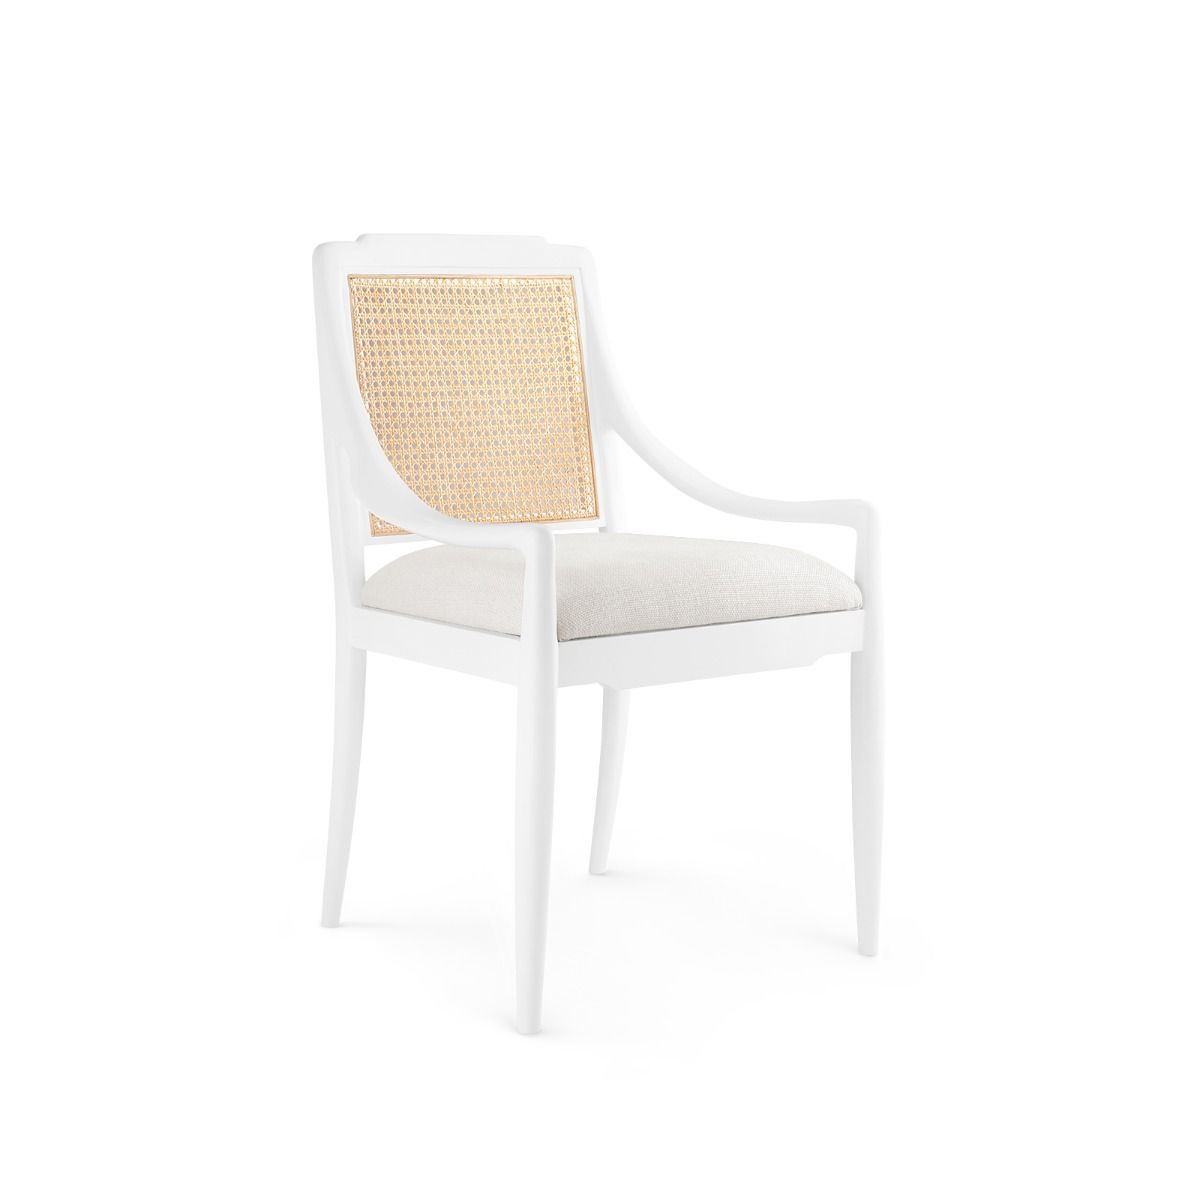 white and cane mahogany chair